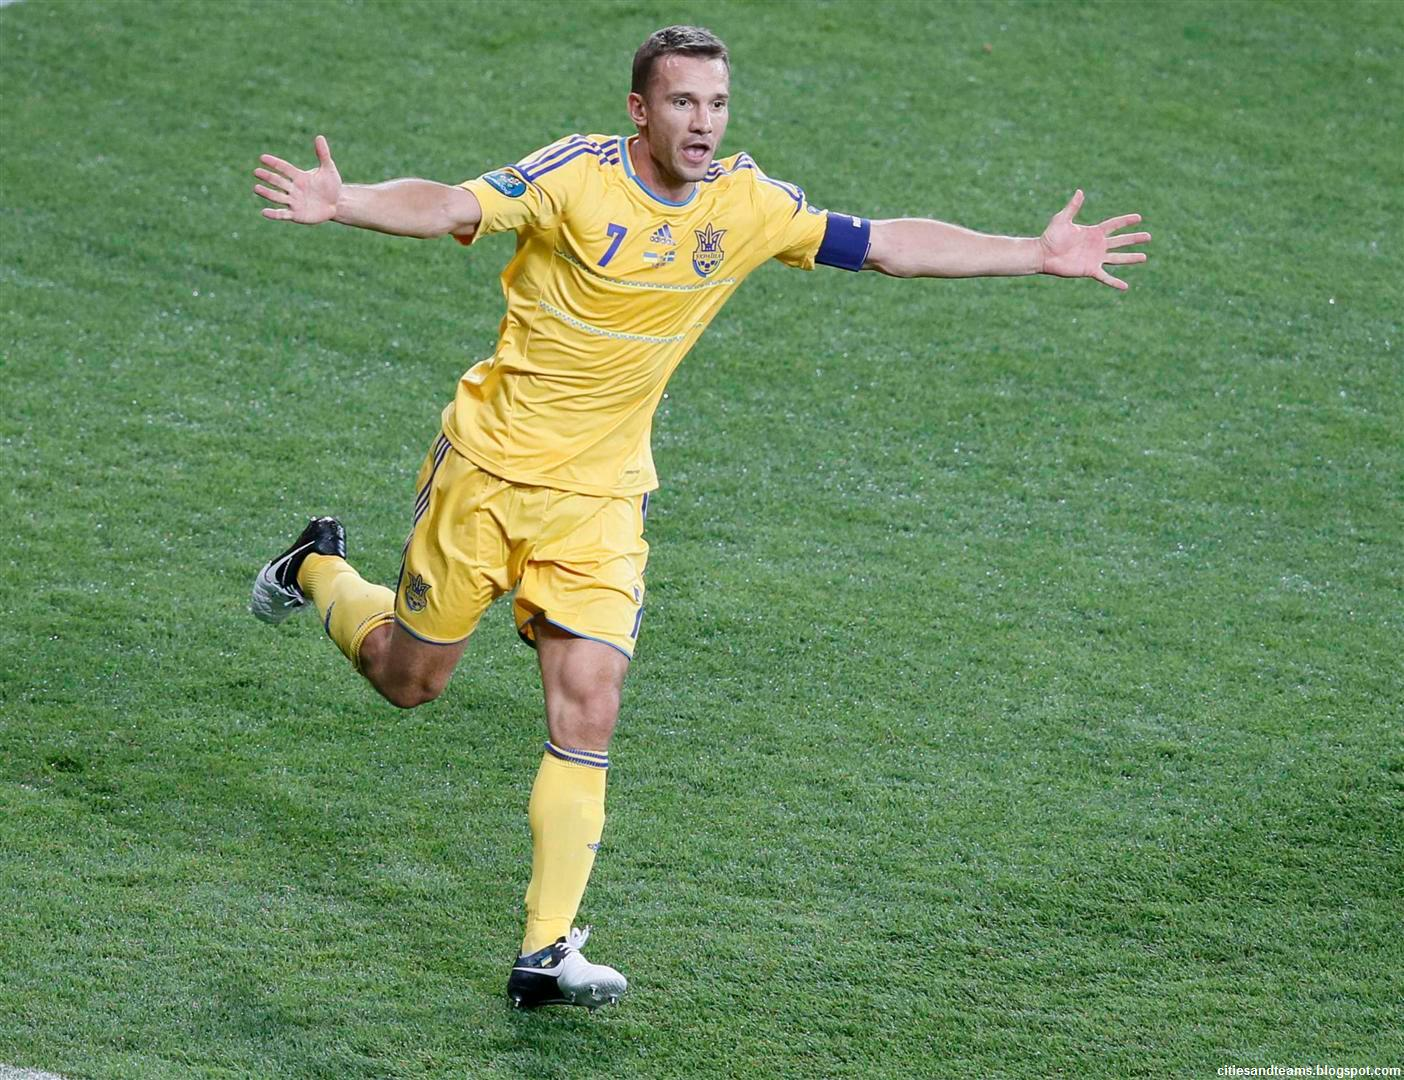 Andriy shevchenko ukrainian legend back euro 2012 ukraine hd desktop